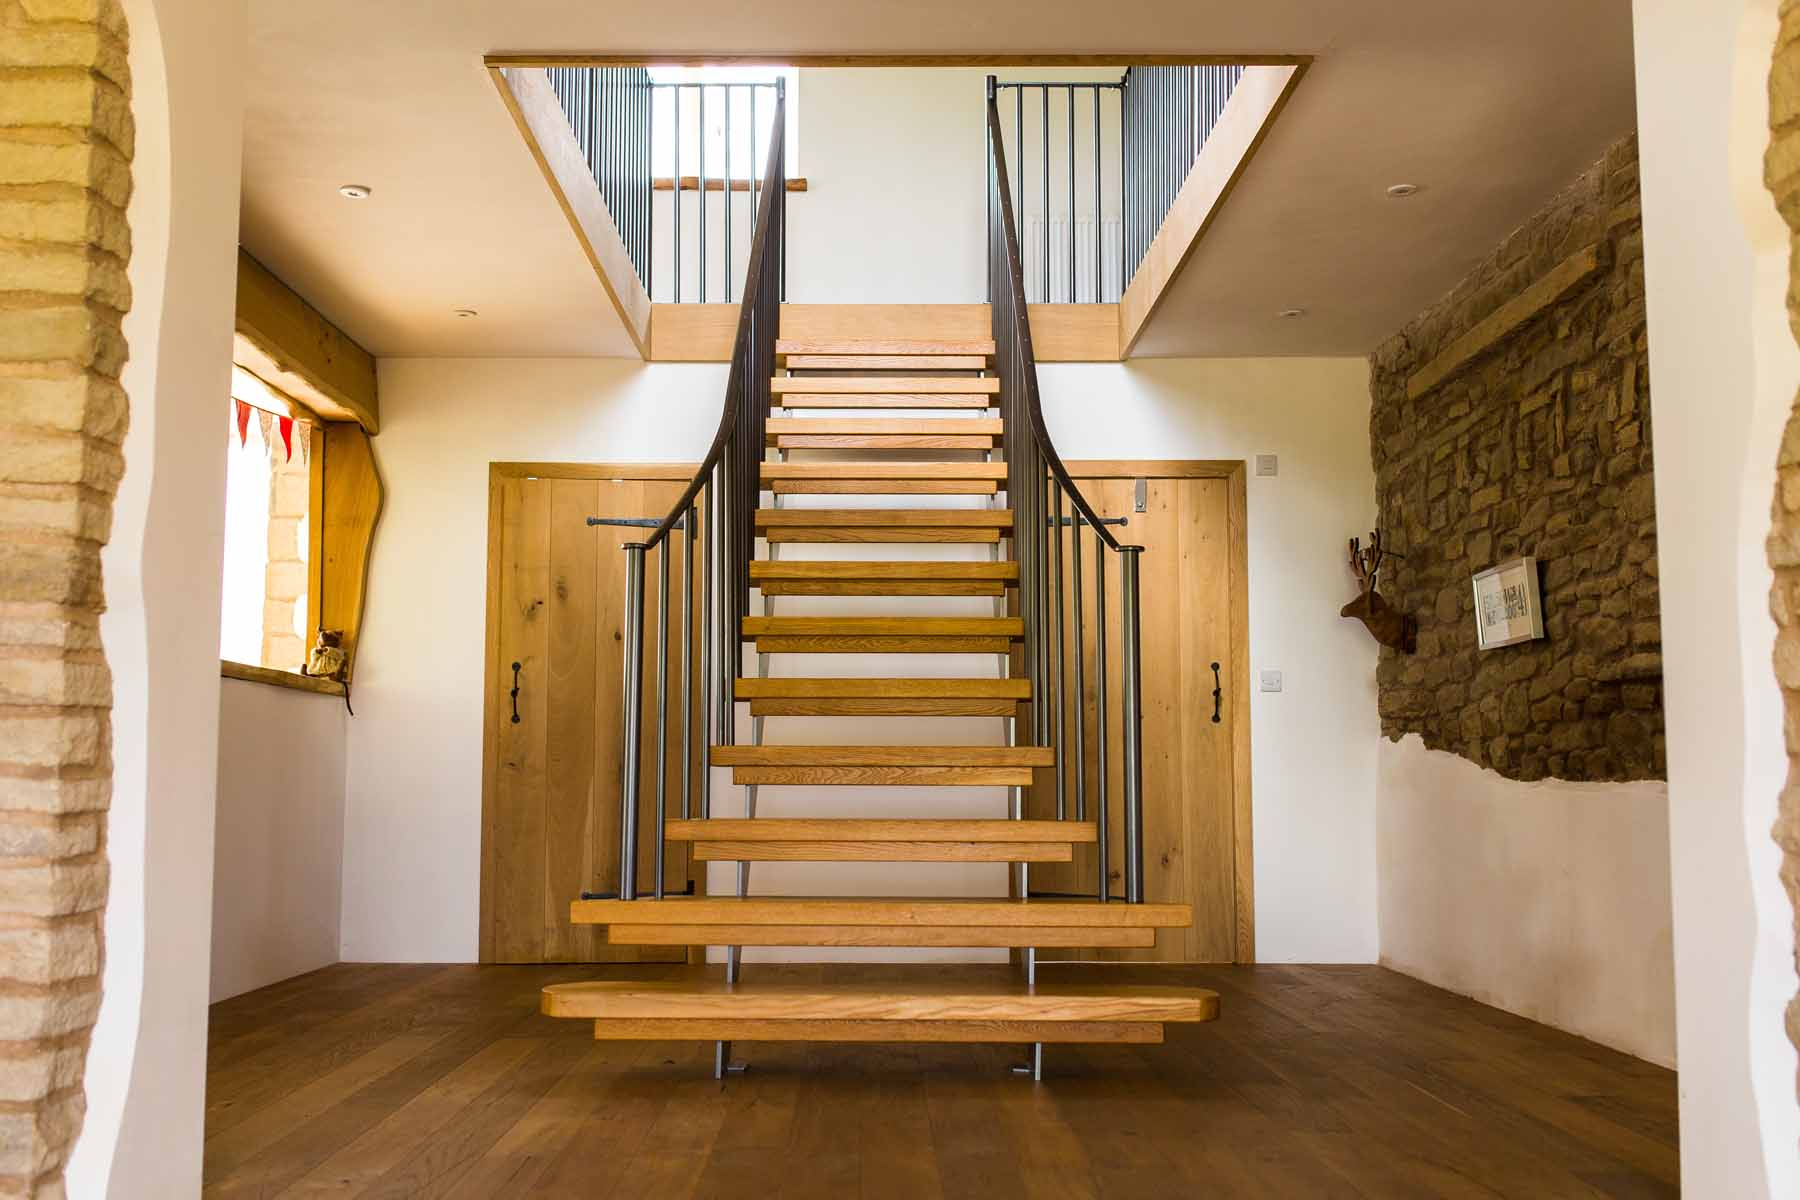 Steel and Timber Staircase with Metal Handrails